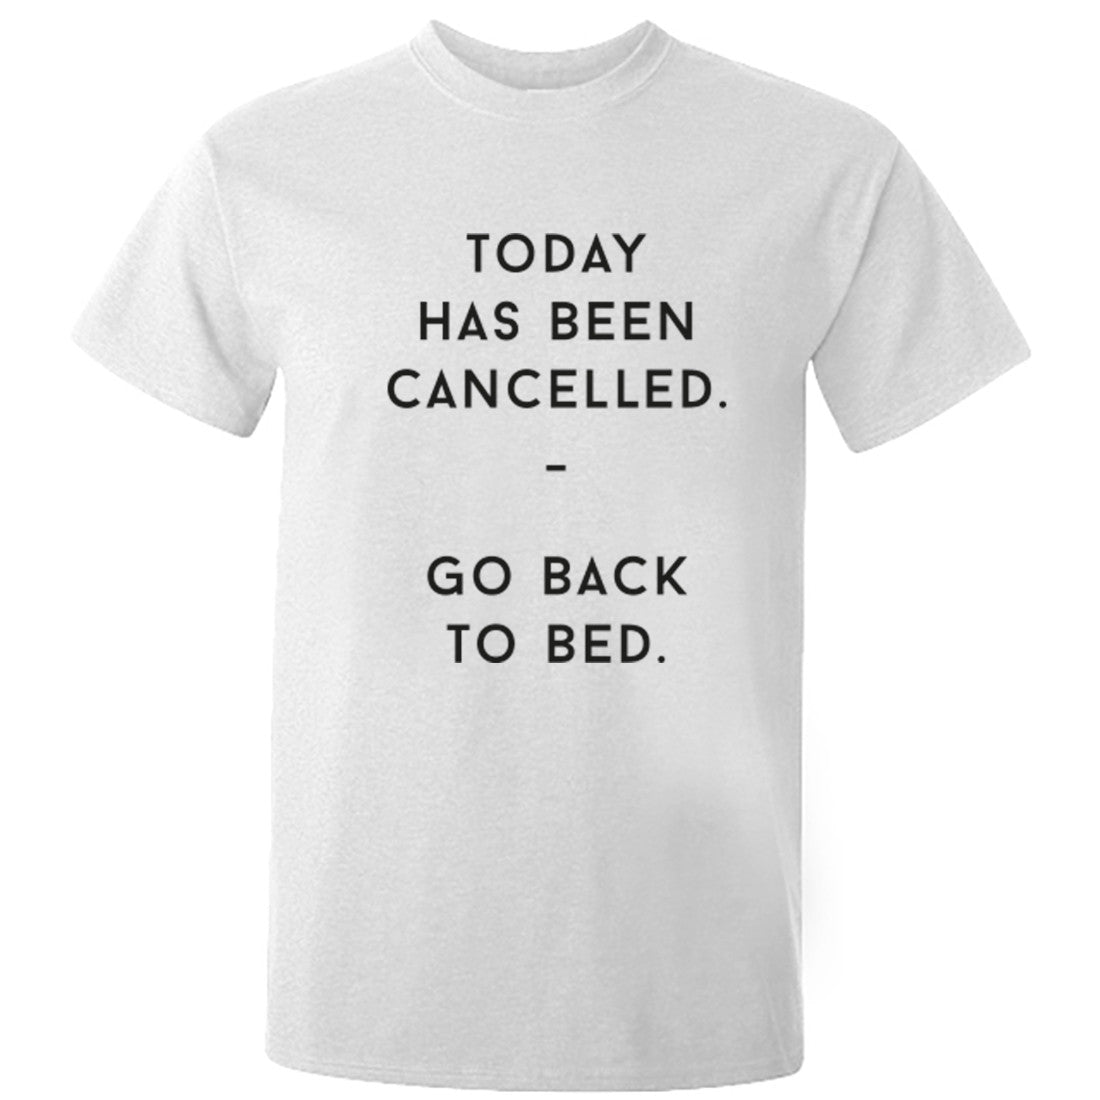 Today Has Been Cancelled Go Back To Bed Unisex Fit T-Shirt K0415 - Illustrated Identity Ltd.